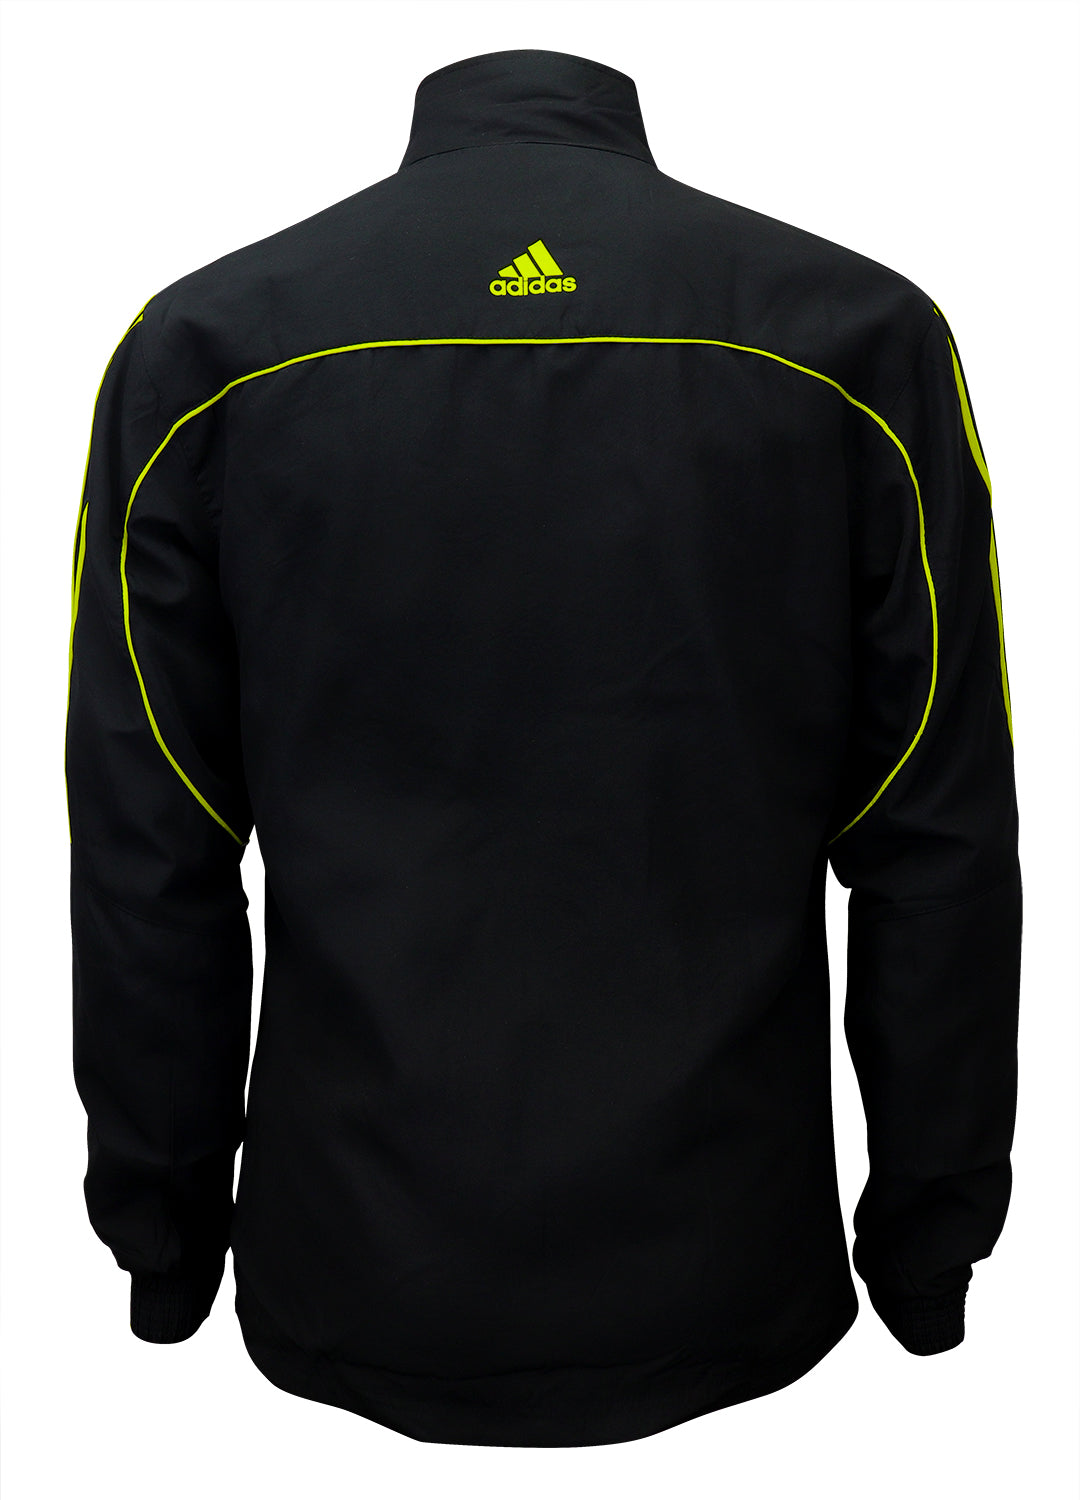 adidas Black with Neon Green Stripes Windbreaker Style Team Jacket Back View